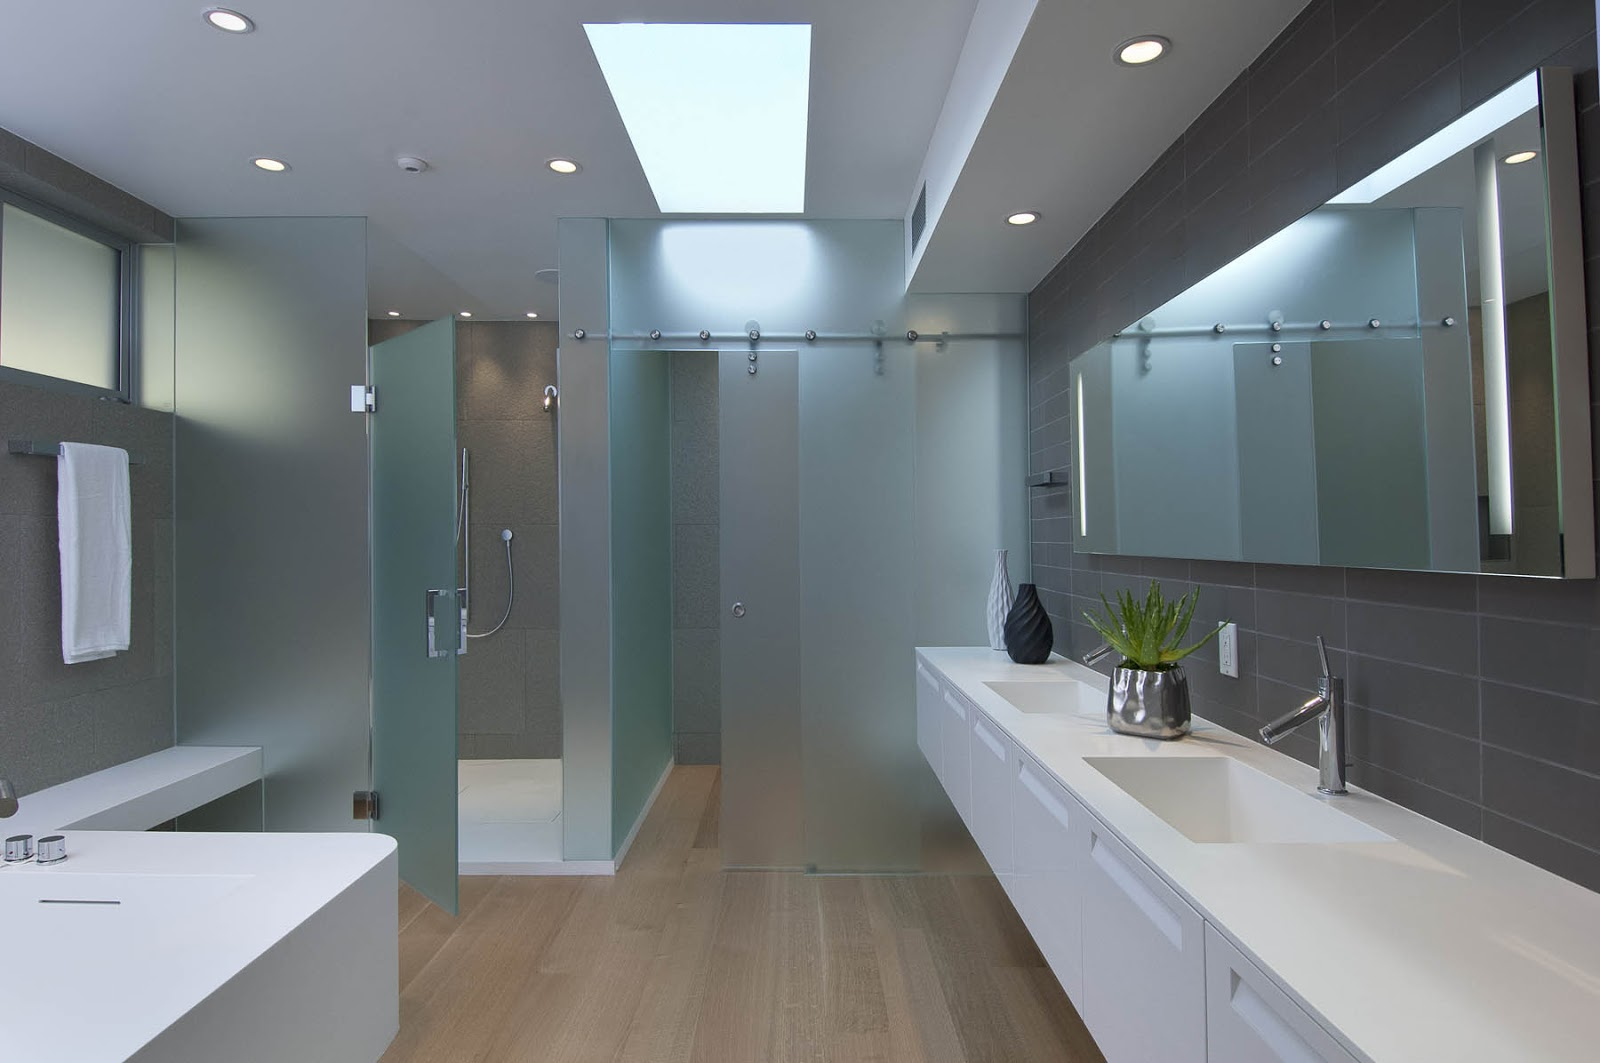 Hollywood hills master bathroom design project the design - Picture Of Large Modern Bathroom Modern Home Bathroom In Hollywood Hills